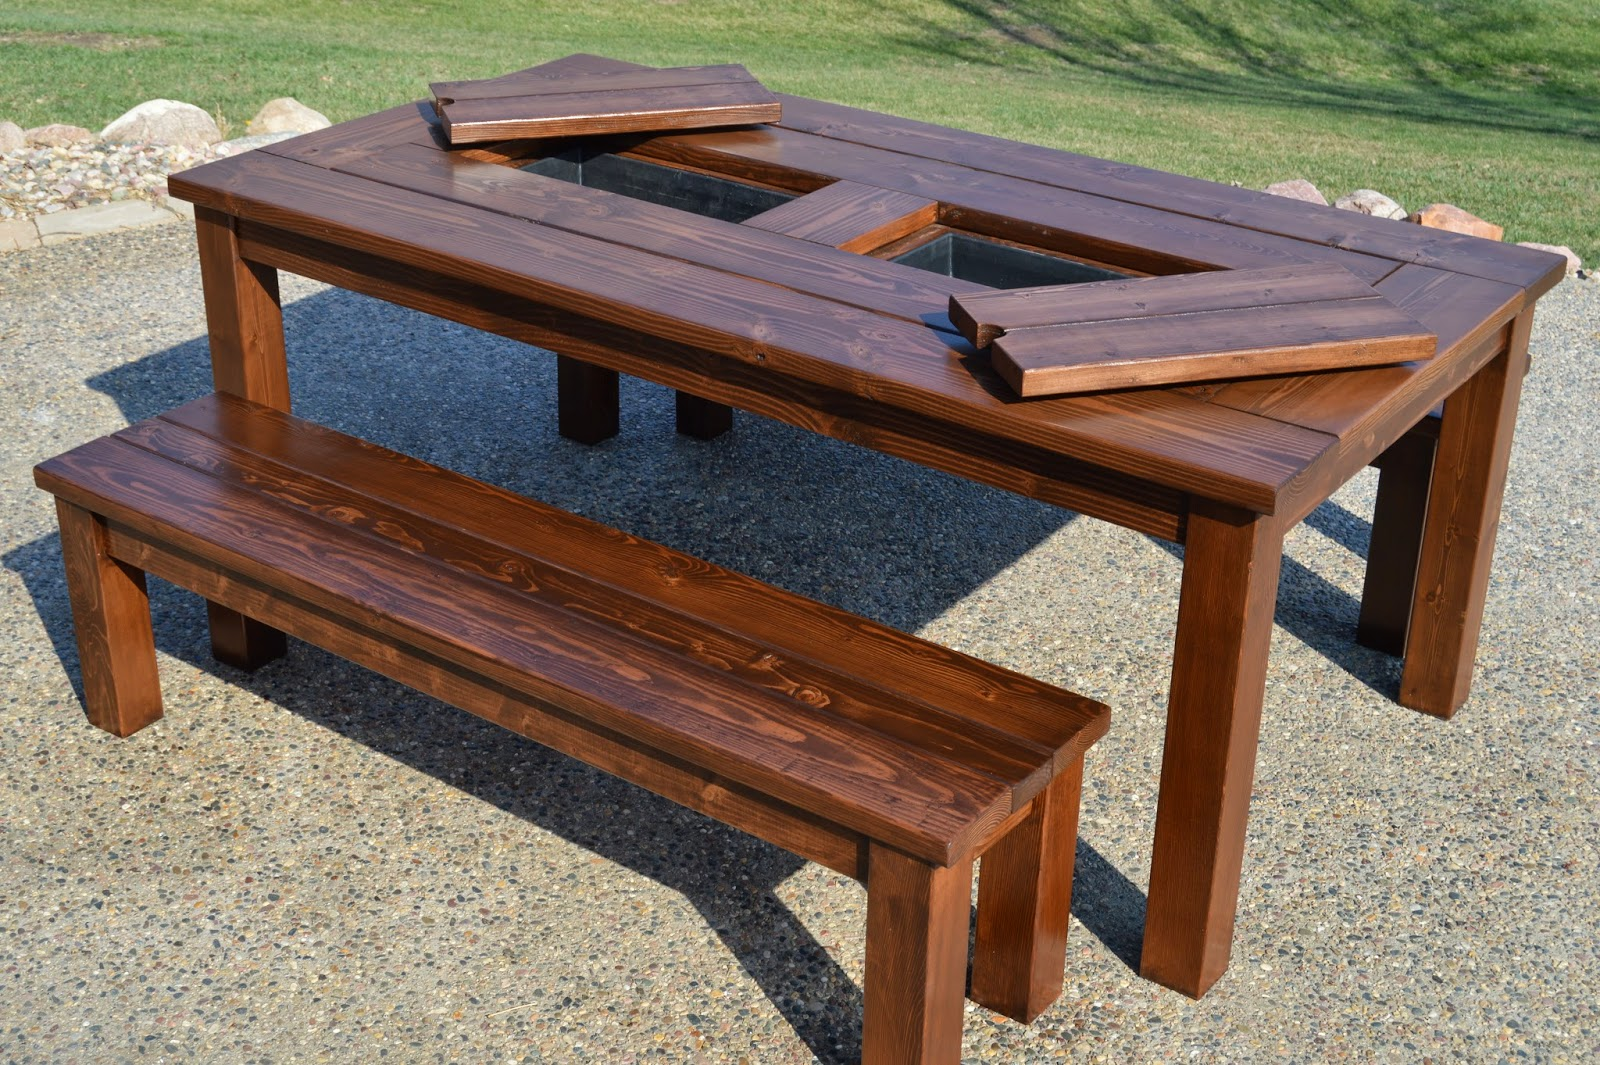 Patio Table Witih Built In Drink Coolers, Kruseu0027s Workshop On Remodelaholic